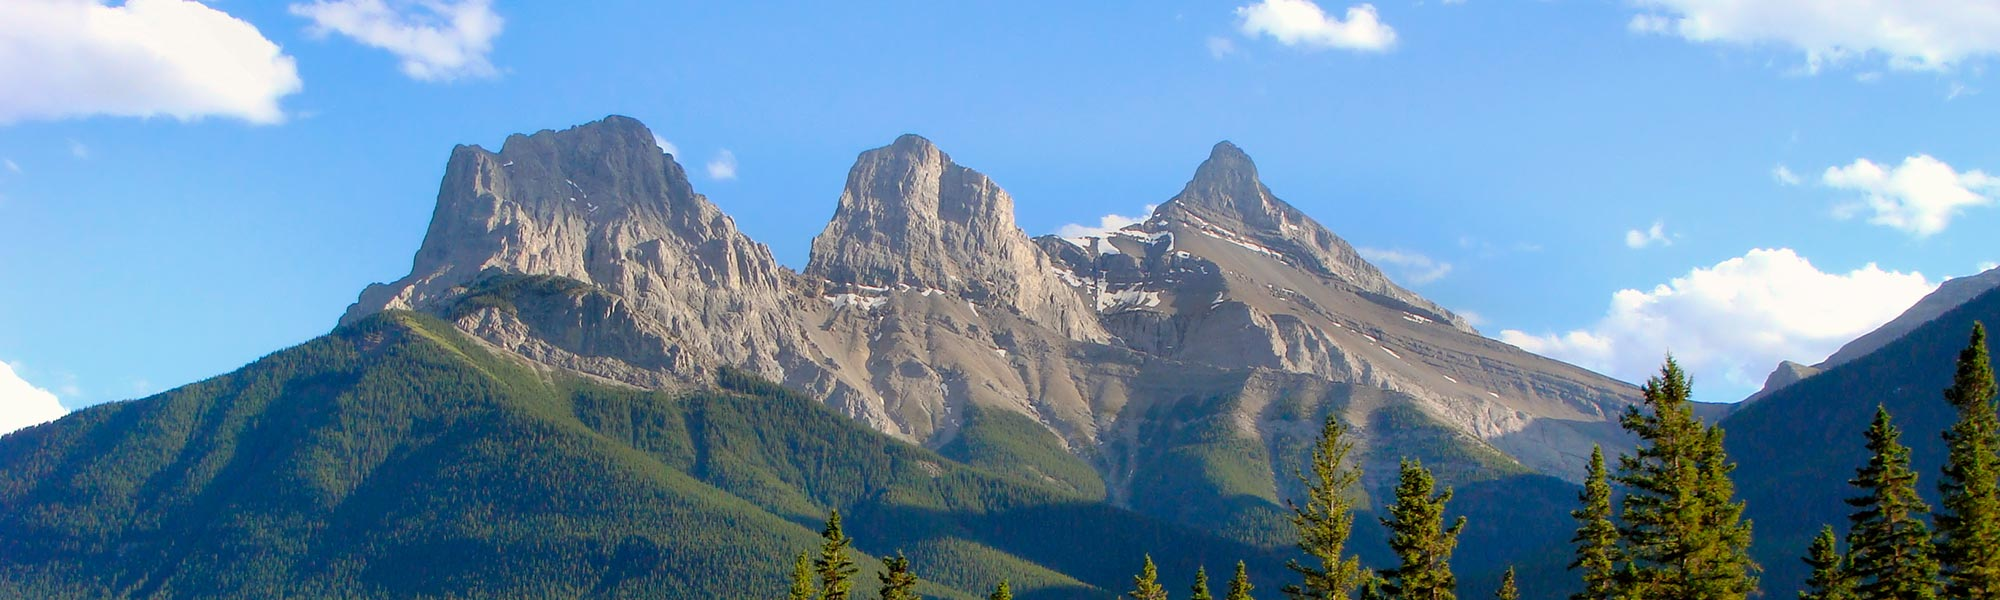 The iconic Three Sisters mountain range in Canmore, Alberta